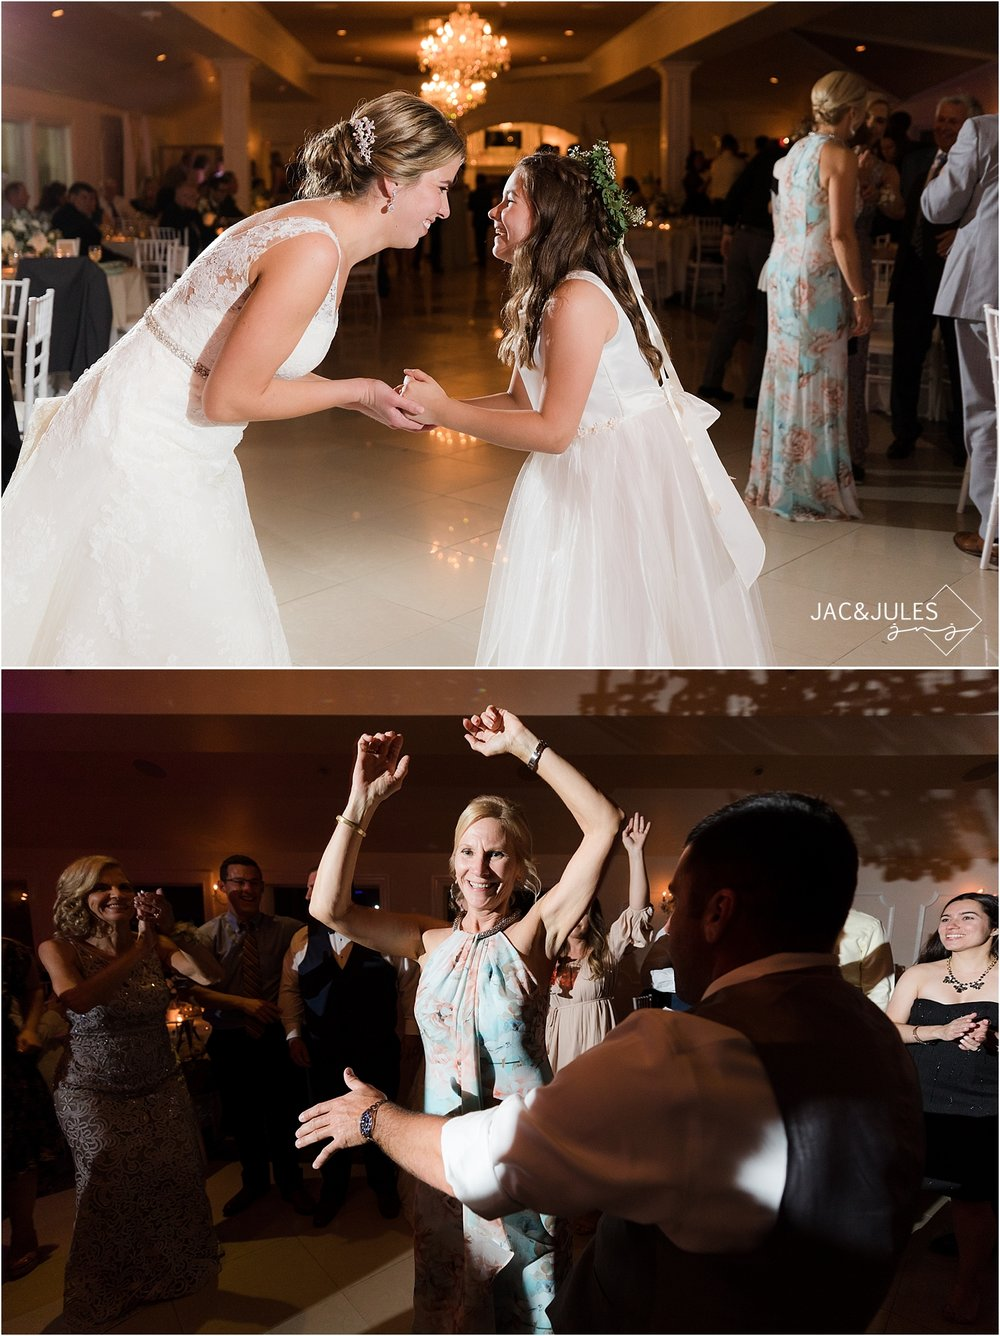 bride and flower dancing together at wedding reception